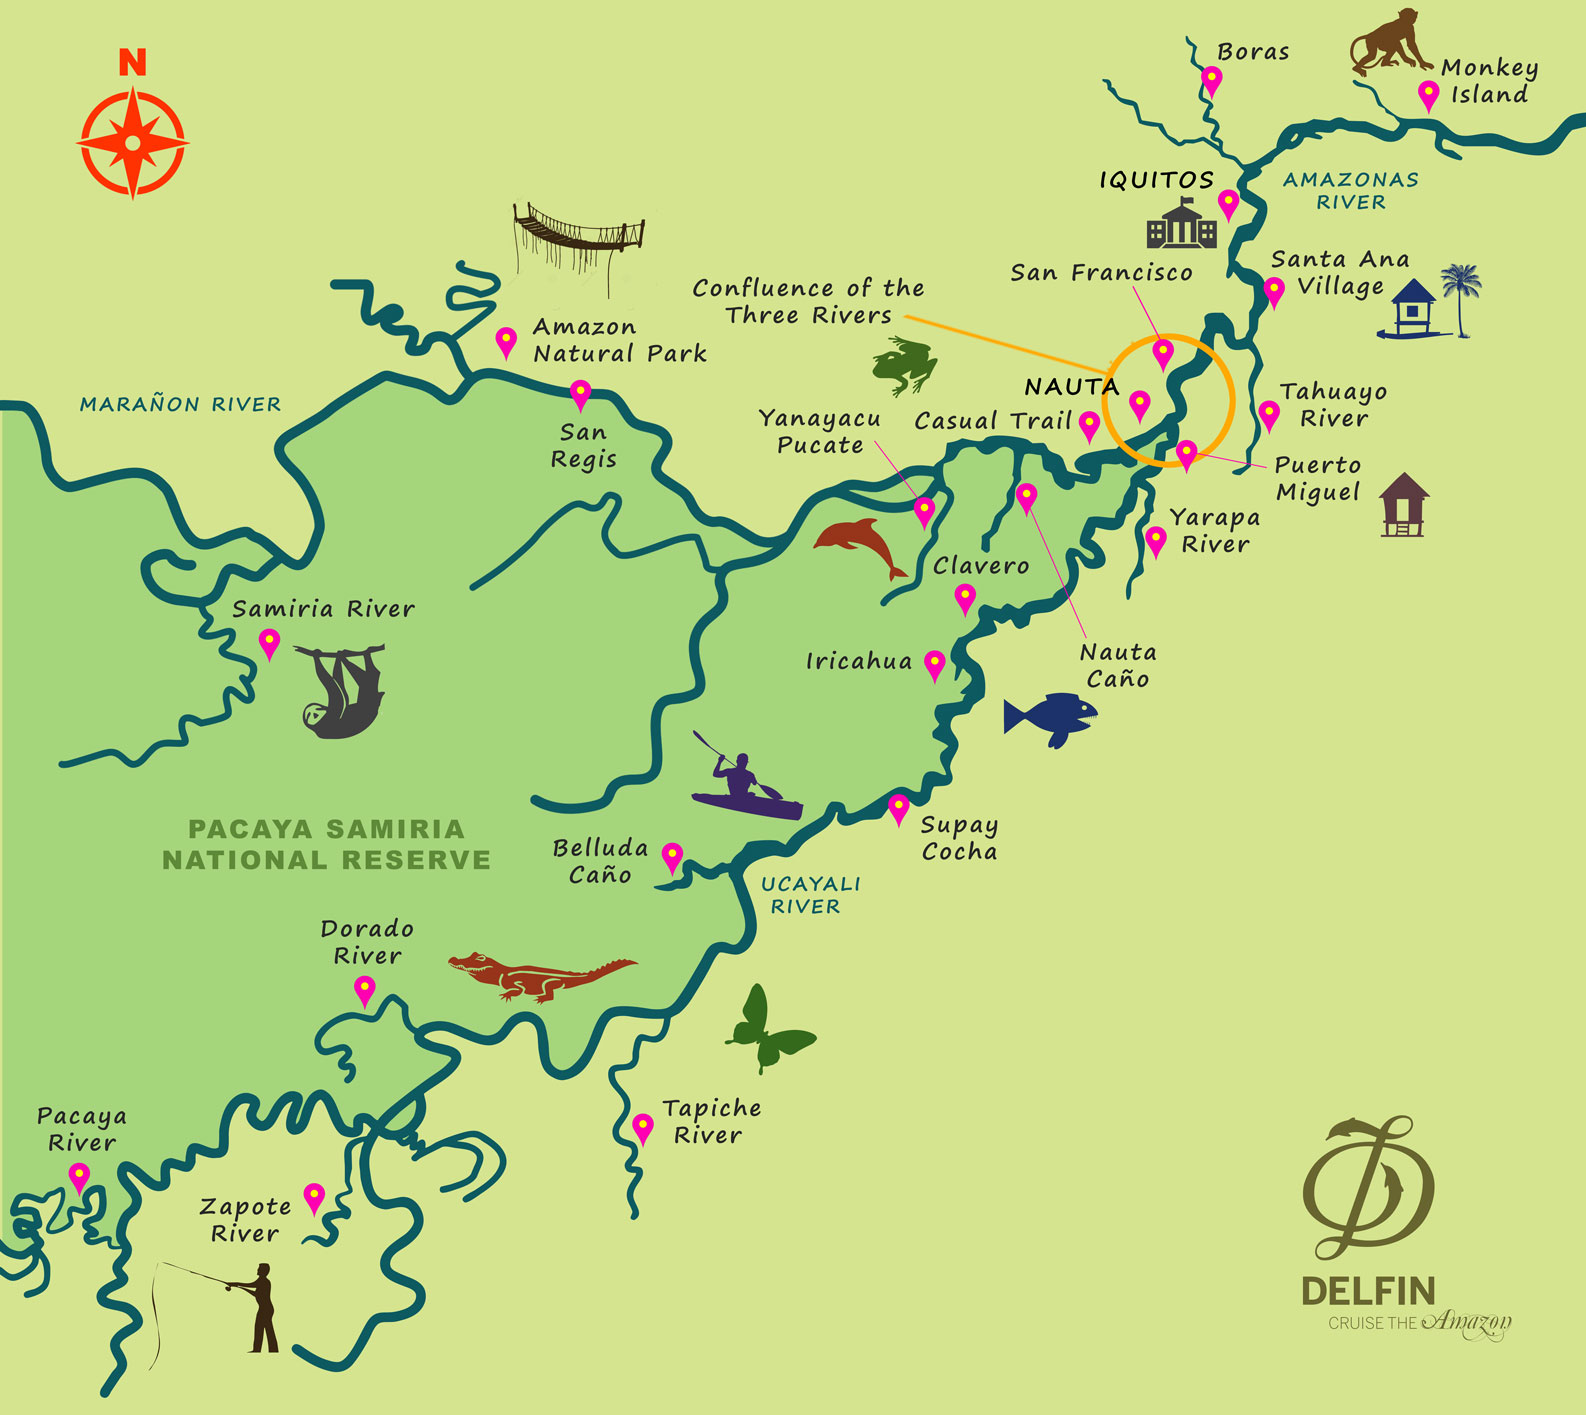 Map for Amazon River Cruise (5 days) Delfin II